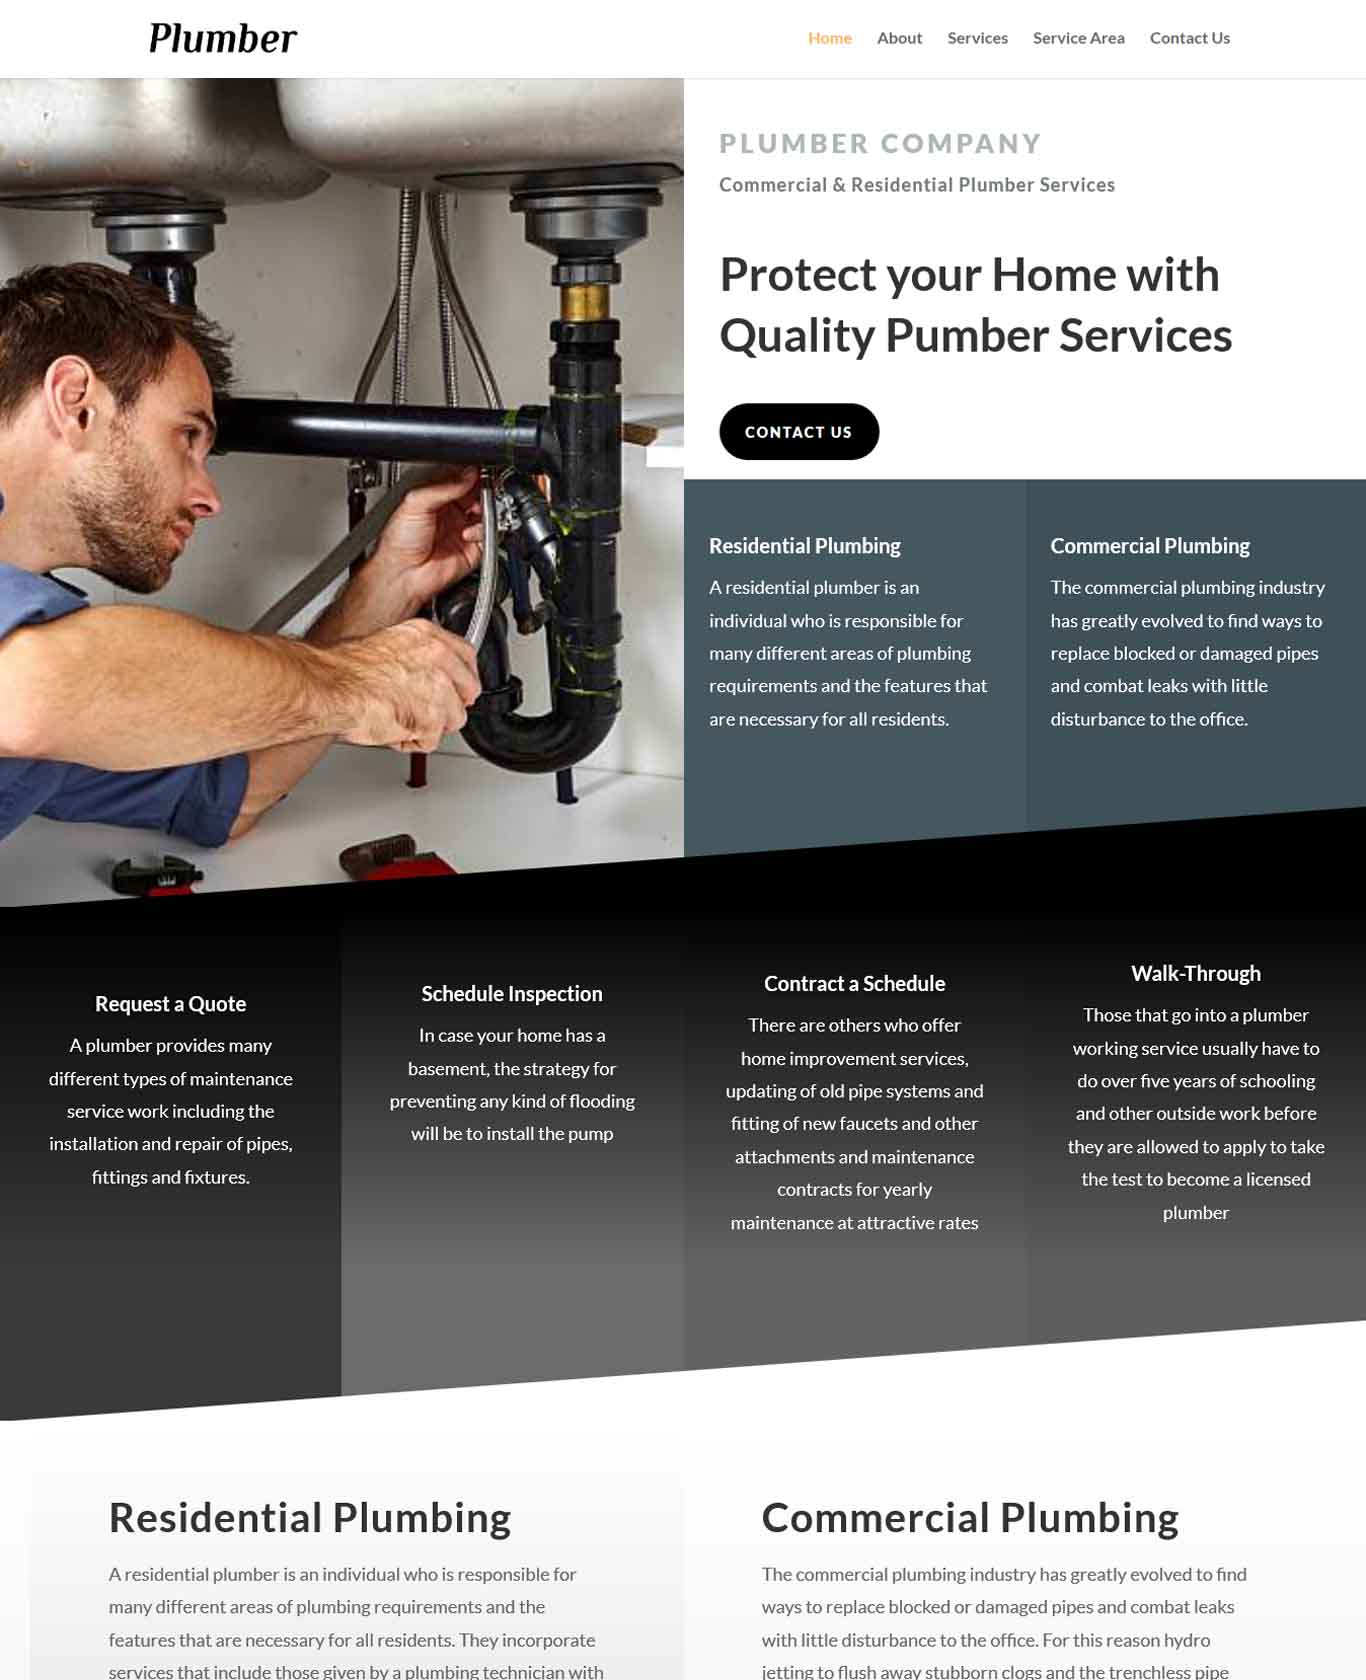 Plumber Website Sample Design 3